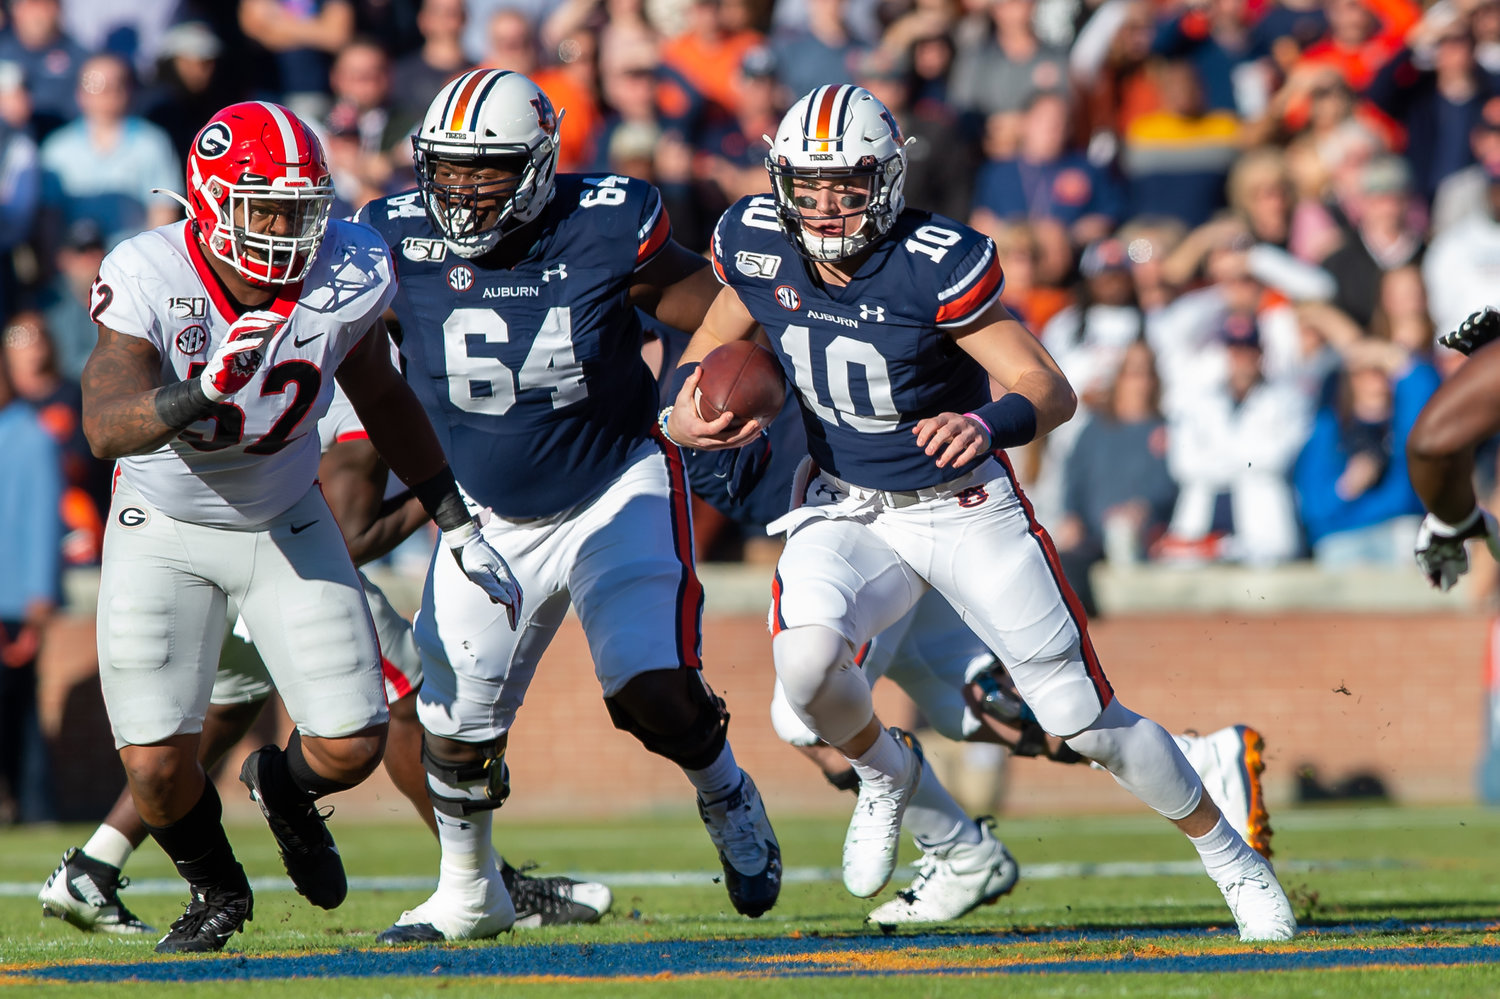 Auburn Tigers quarterback Bo Nix (10) runs during the first half of Saturday's game, at Jordan-Hare Stadium in Auburn,, AL. Daily Mountain Eagle -  Jeff Johnsey